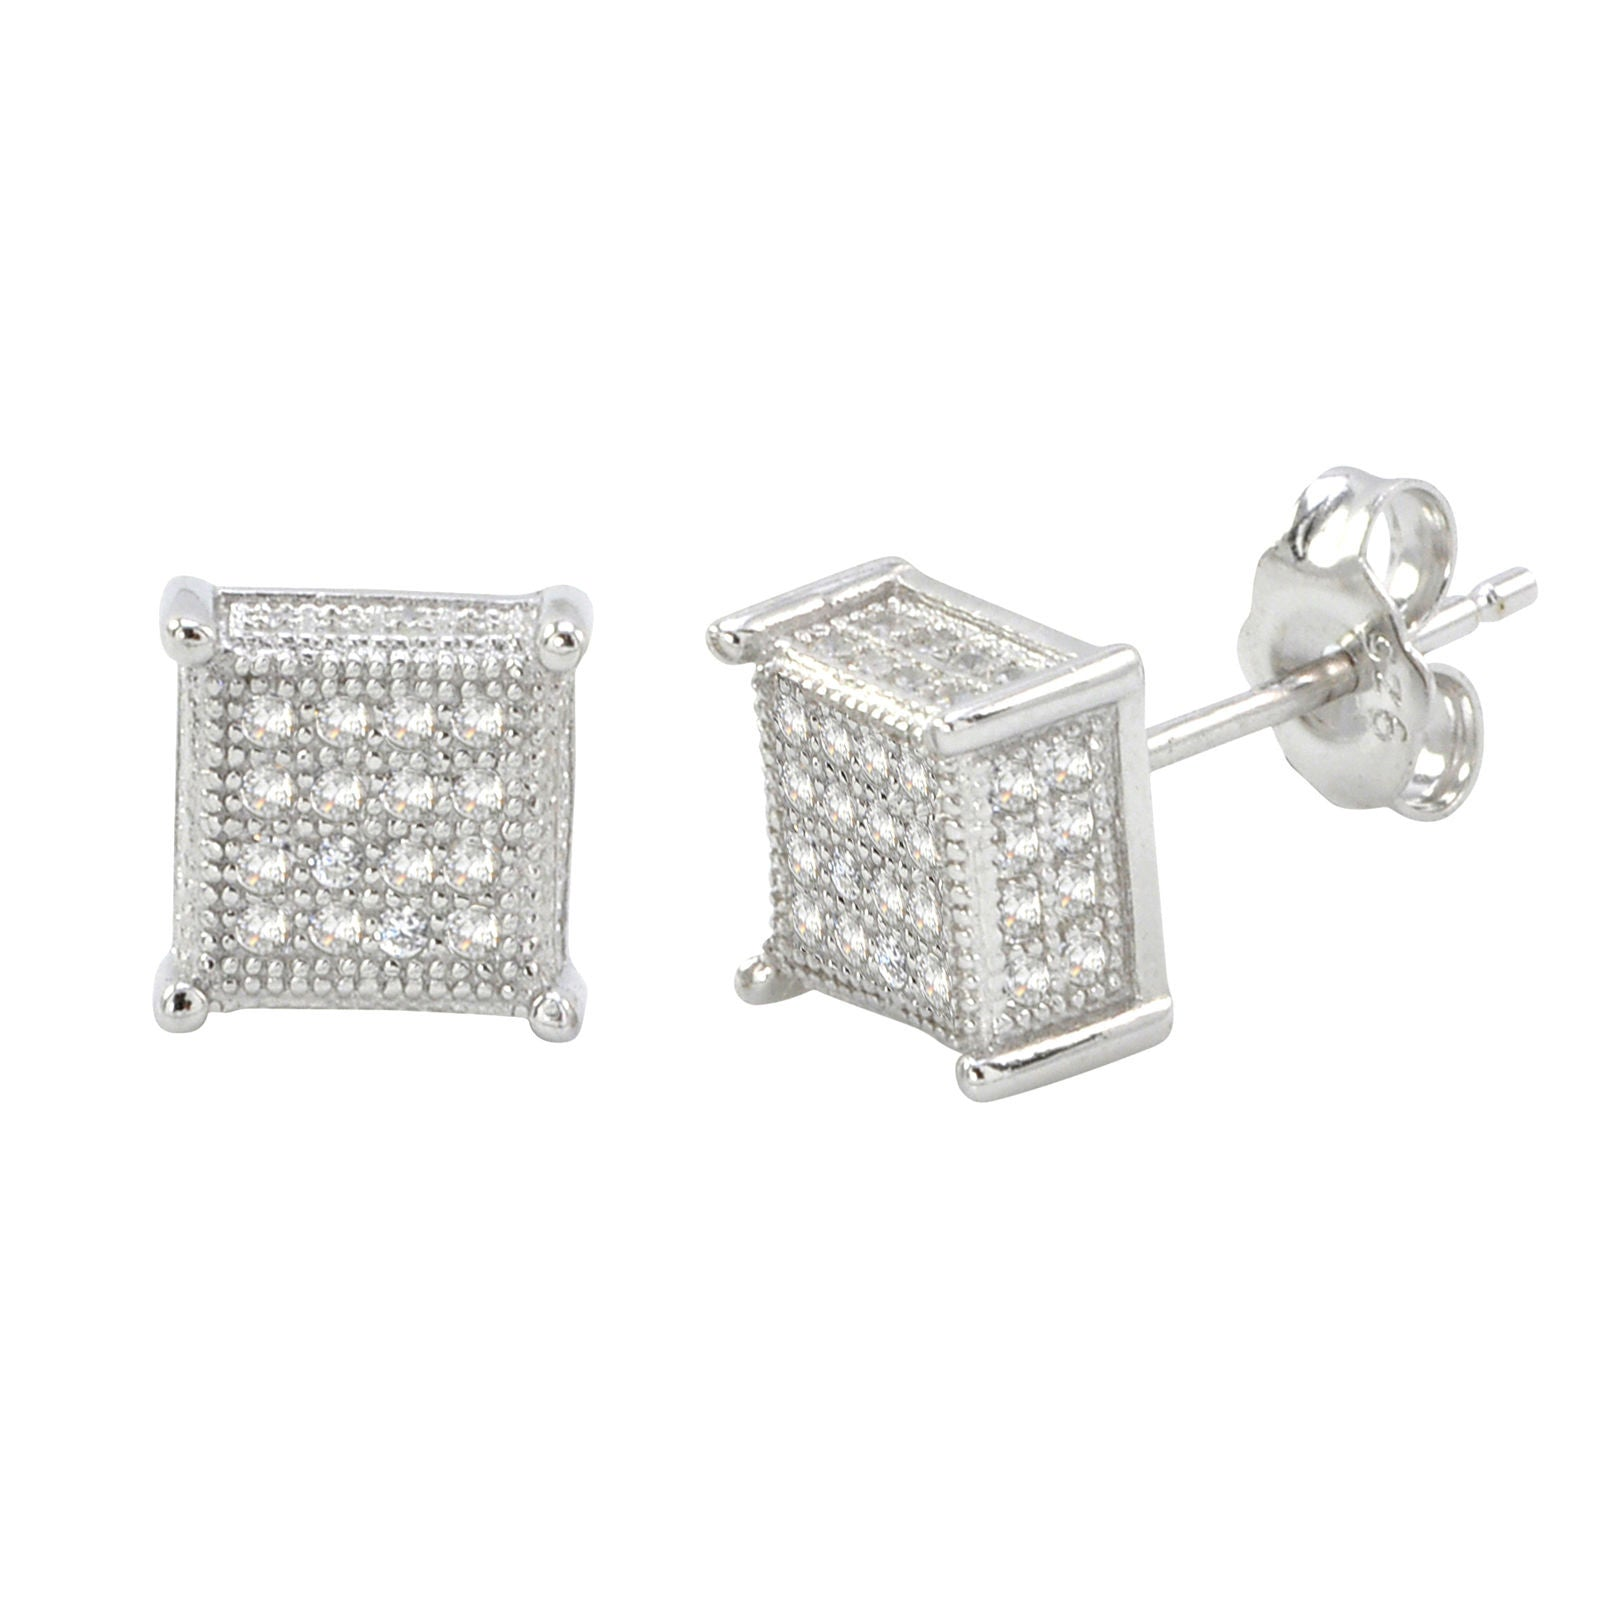 claw brilliant classic diamond aurora cut studearrings square stud earrings brilliantcut studs